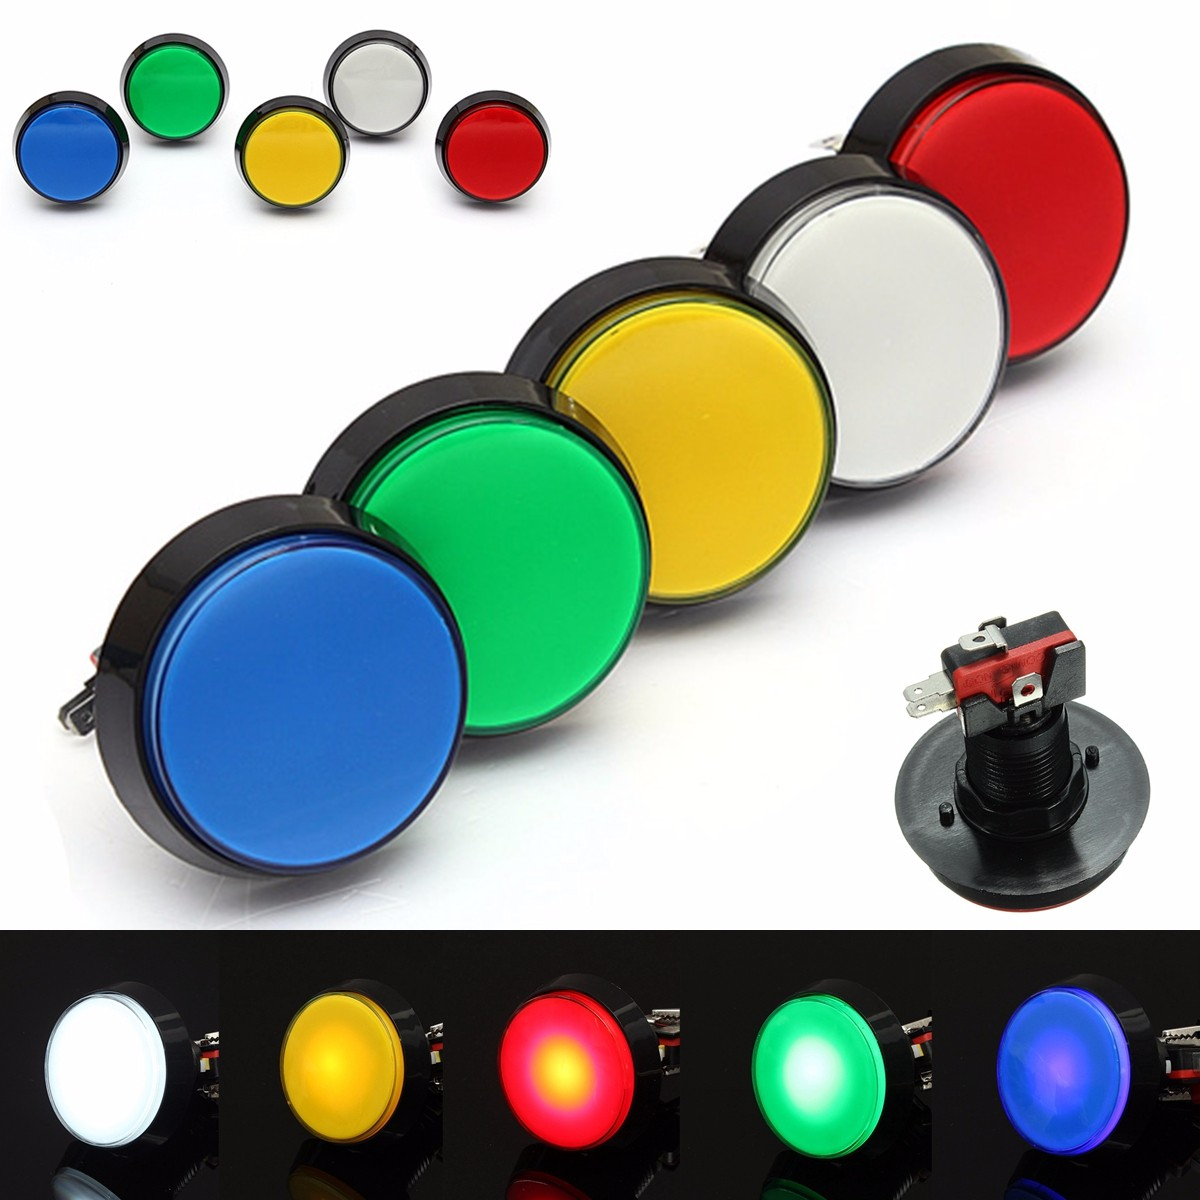 Arcade <font><b>Button</b></font> 5 Colors LED Light Lamp <font><b>60MM</b></font> 45MM Big Round Arcade Video Game Player Push <font><b>Button</b></font> Switch image